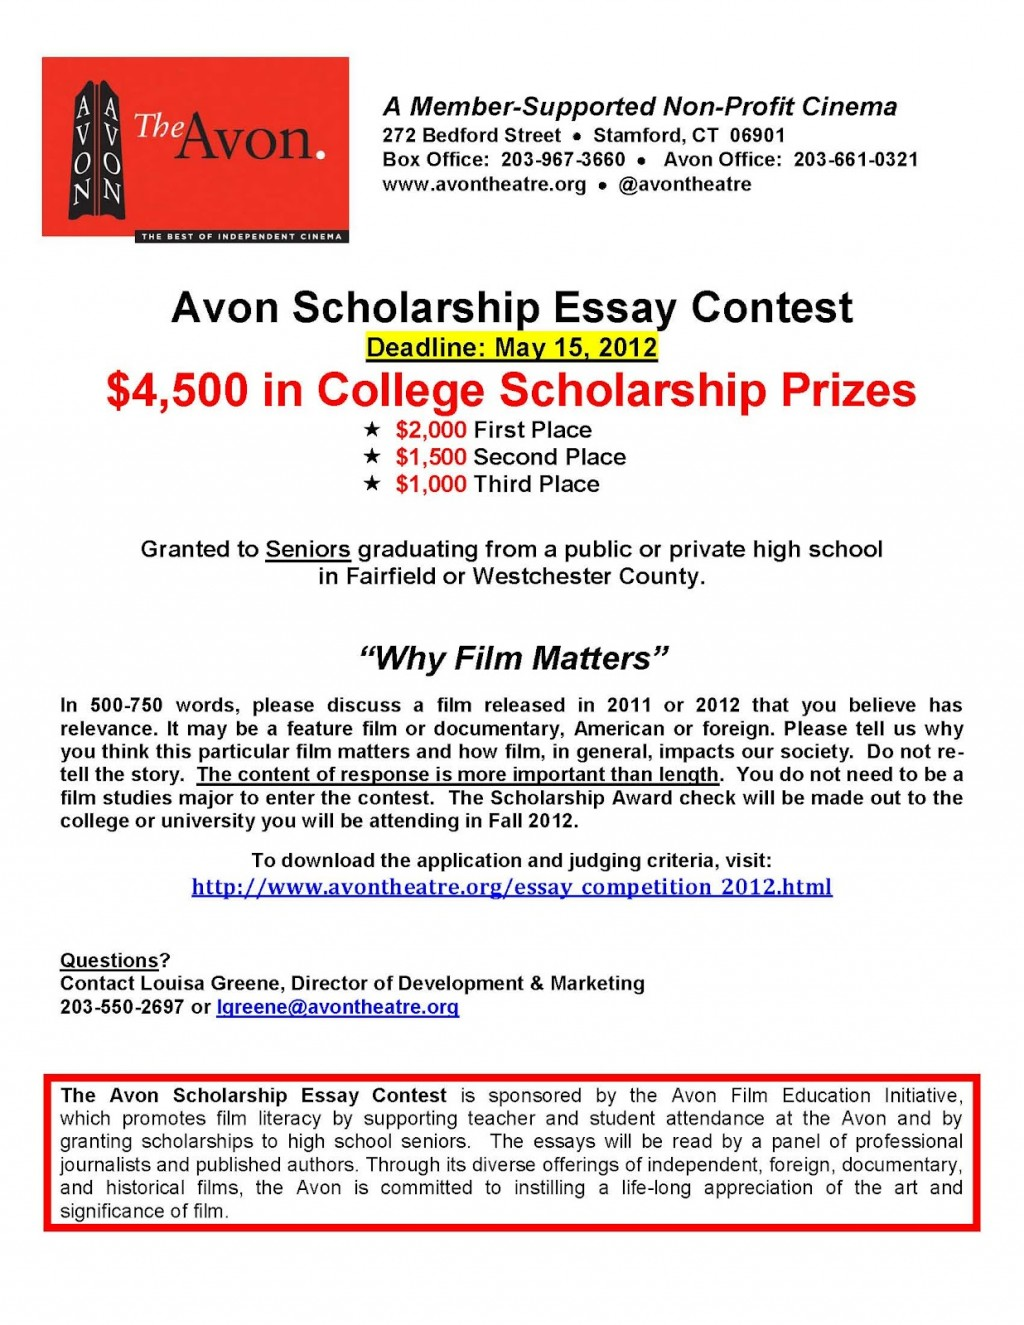 002 No Essay Collegeip Prowler Freeips For High School Seniors Avonscholarshipessaycontest2012 In Texas California Class Of Short Example Wondrous Scholarship Scholarships 2019 Graduates Applications Large